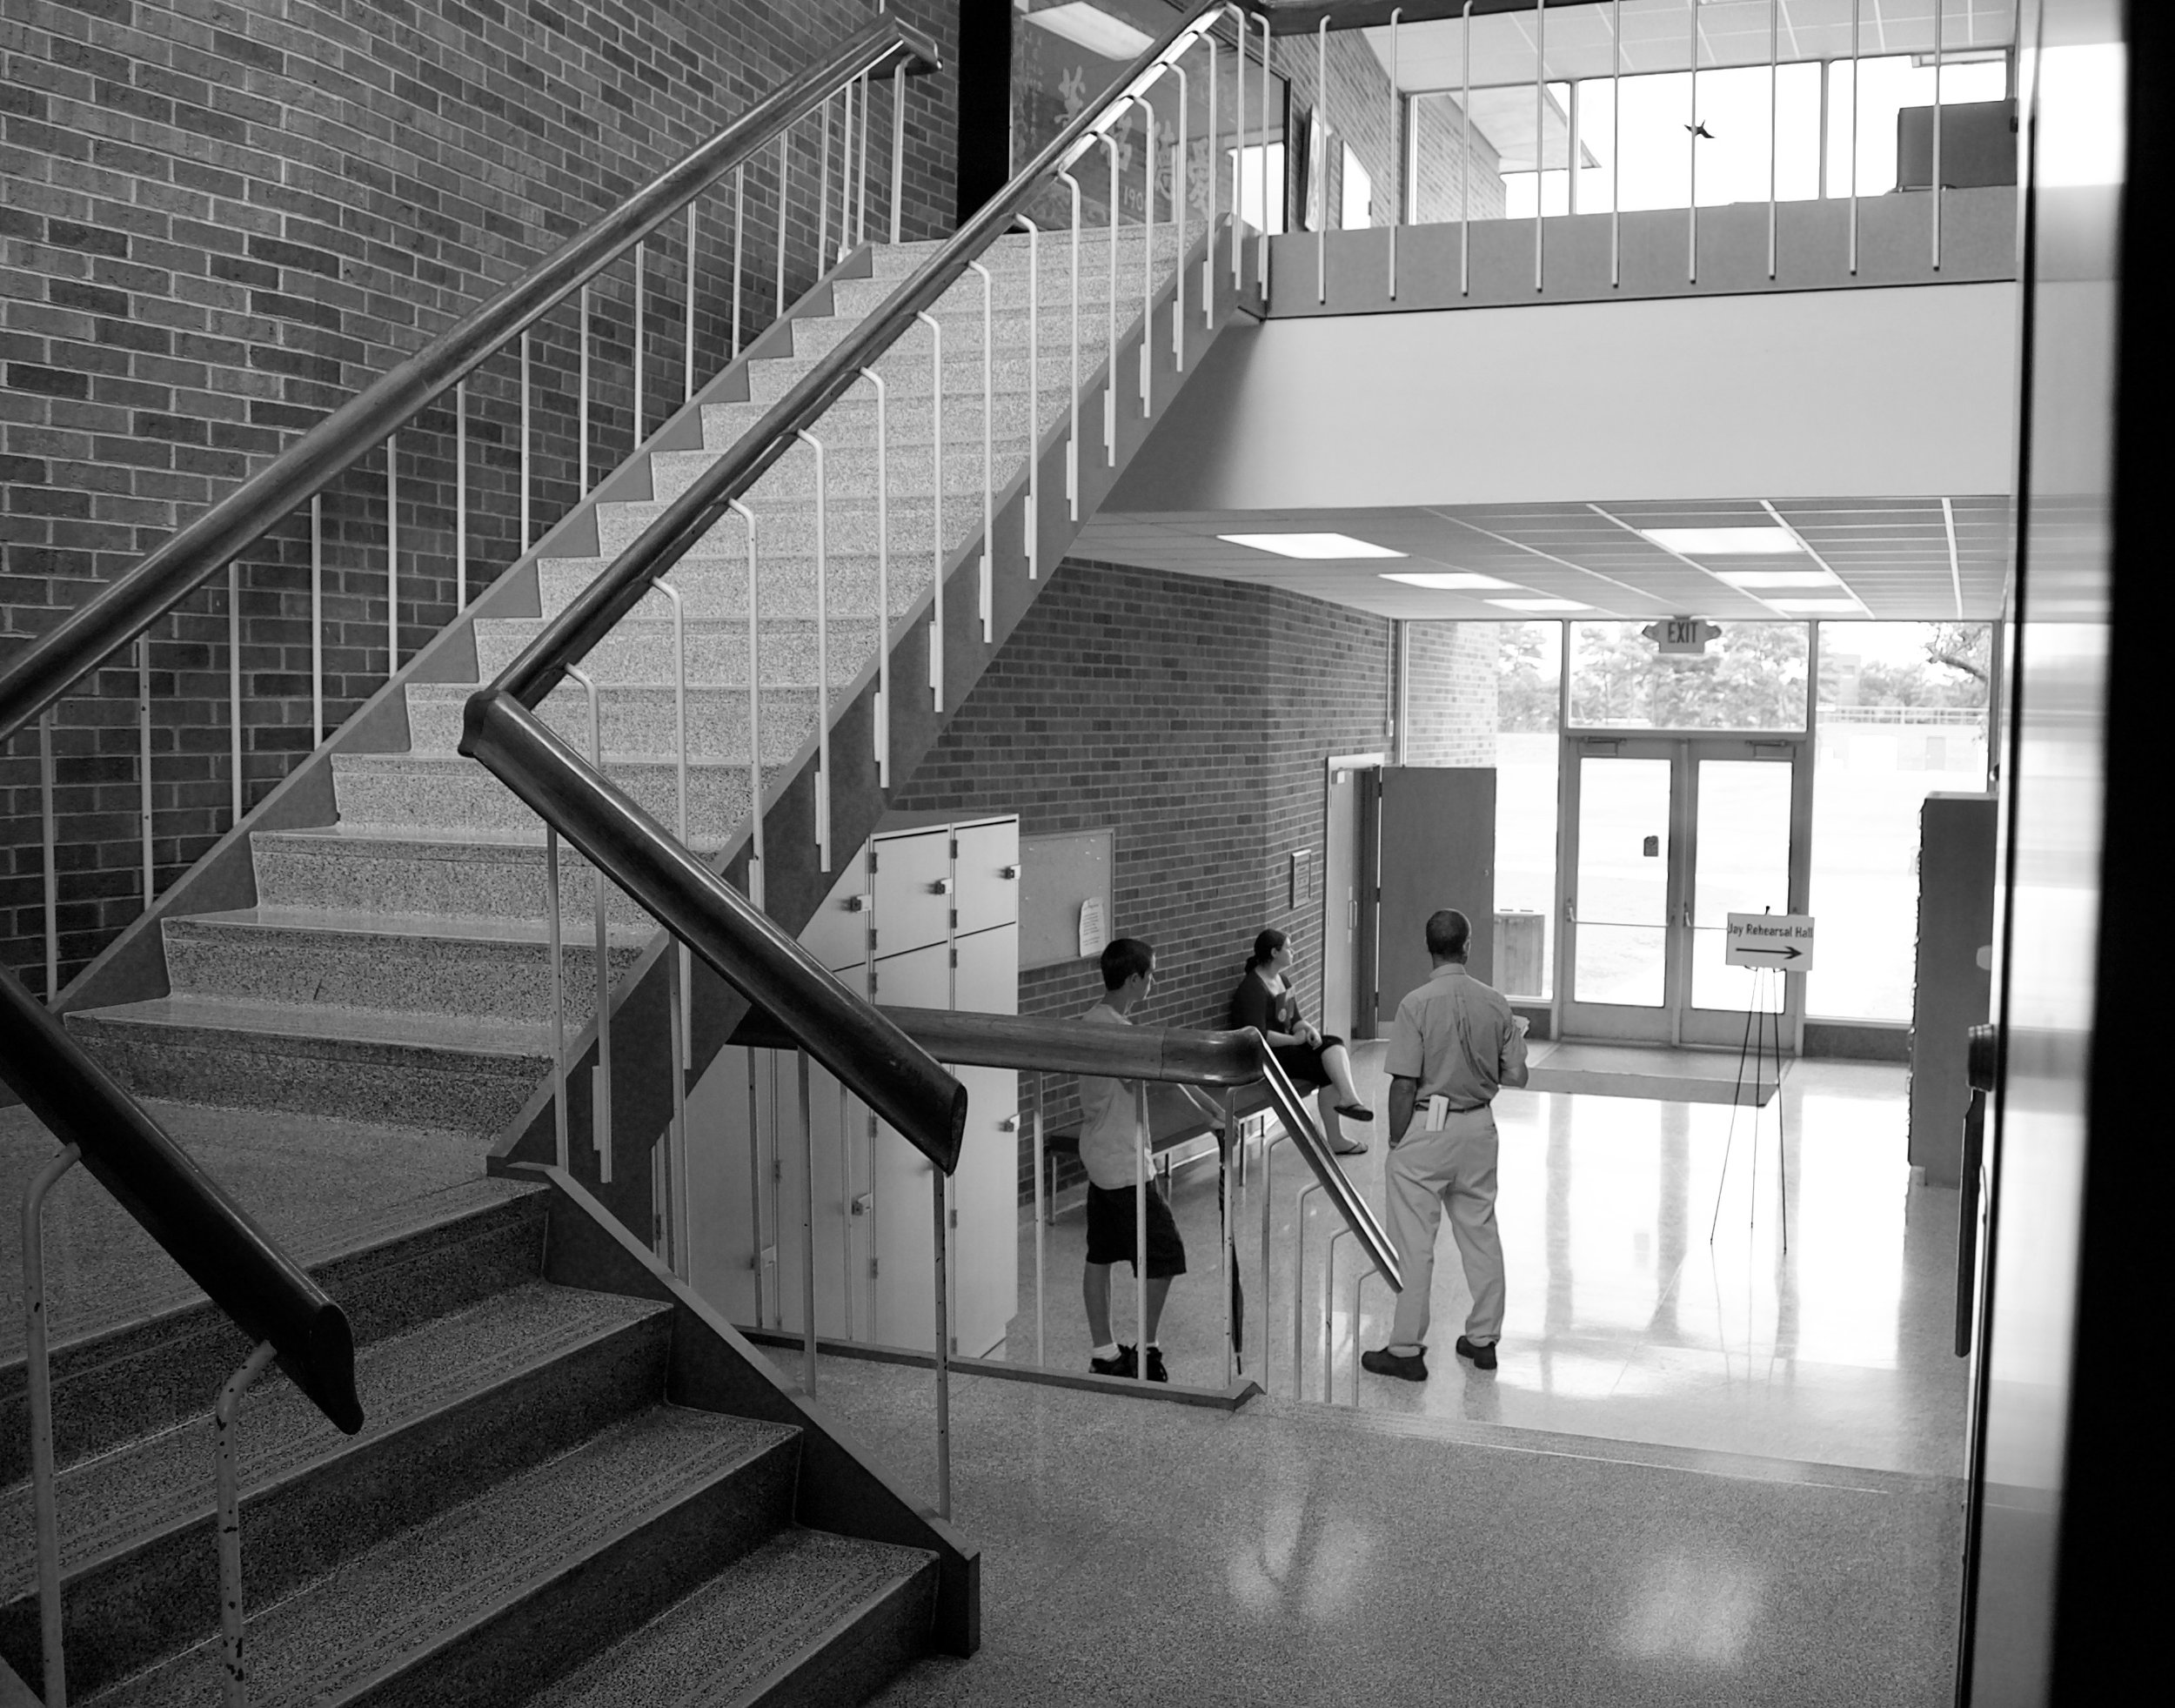 College Visit. Ford Center, Knox College. Galesburg, Illinois. July 2010. © William D. Walker